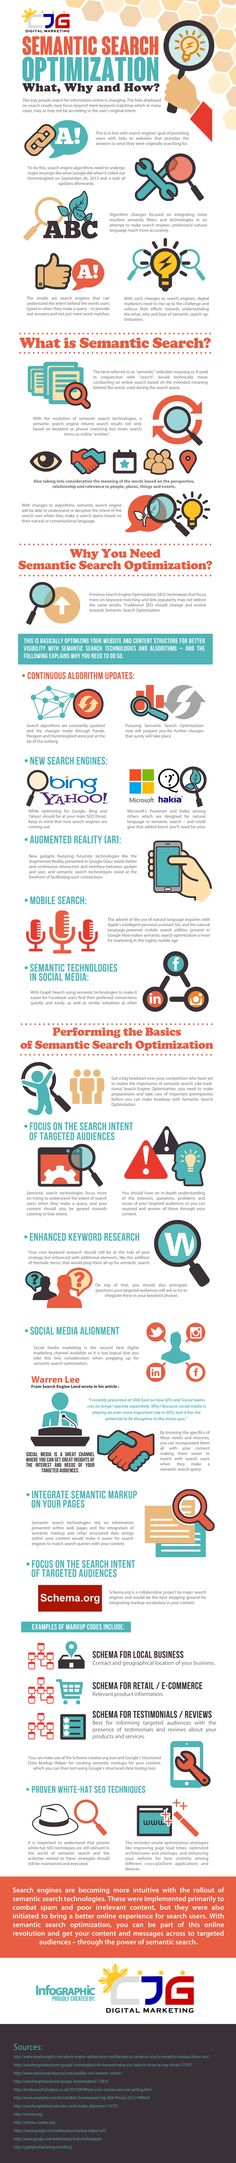 Semantic-Search-Optimization-What-Why-and-How